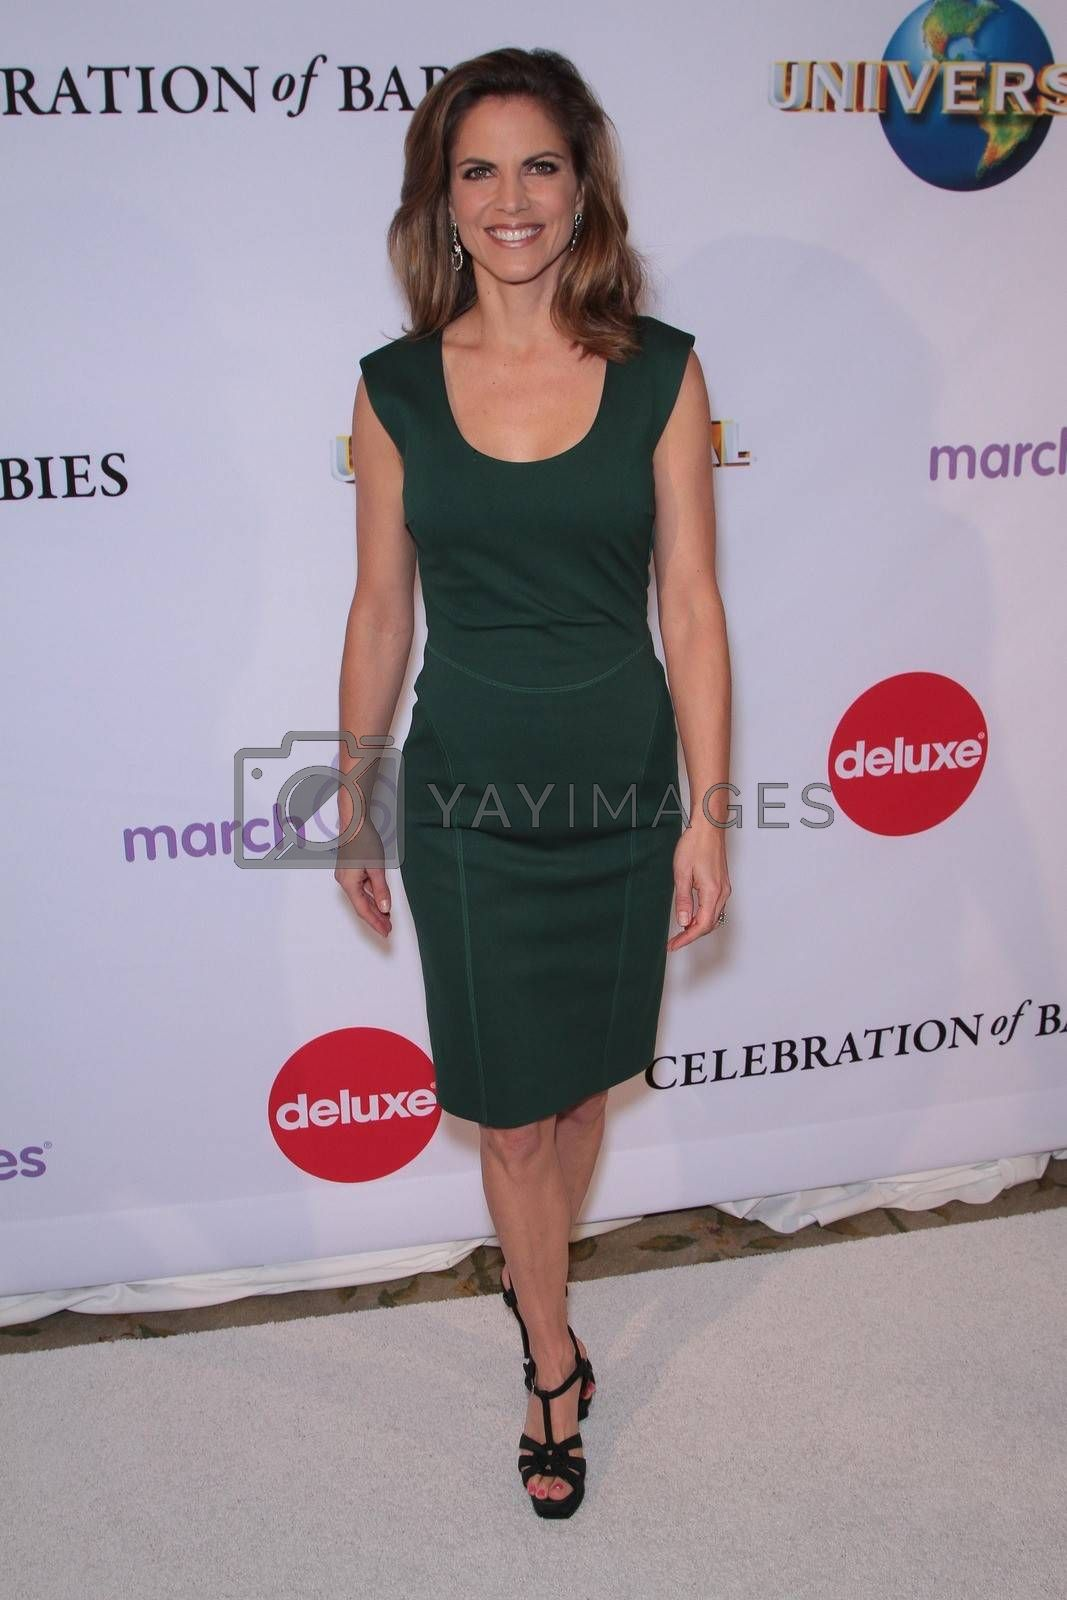 Natalie Morales at the March Of Dimes' 6th Annual Celebration Of Babies Luncheon, Beverly Hills Hotel, Beverly Hills, CA 12-02-11/ImageCollect by ImageCollect